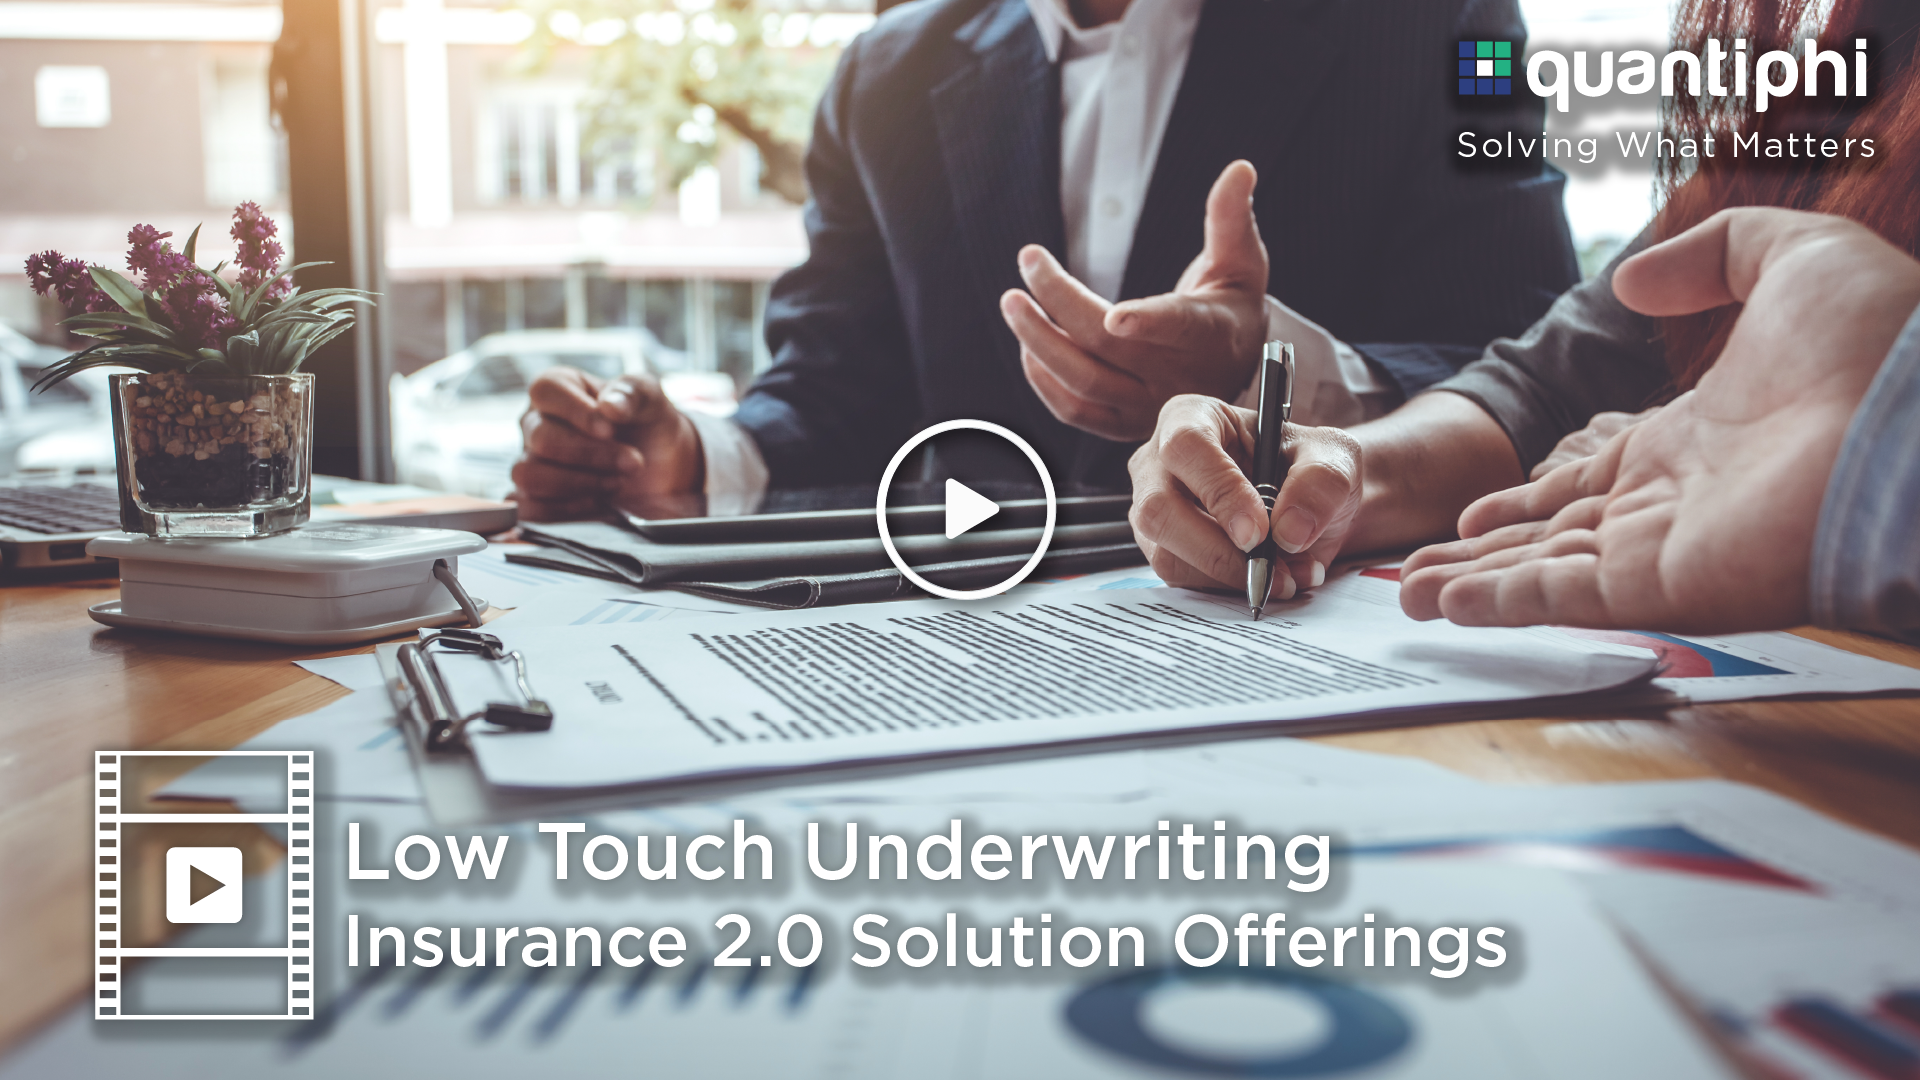 Quantiphi Insurance 2.0 Transforming Underwriting - Low Touch Underwriting Video